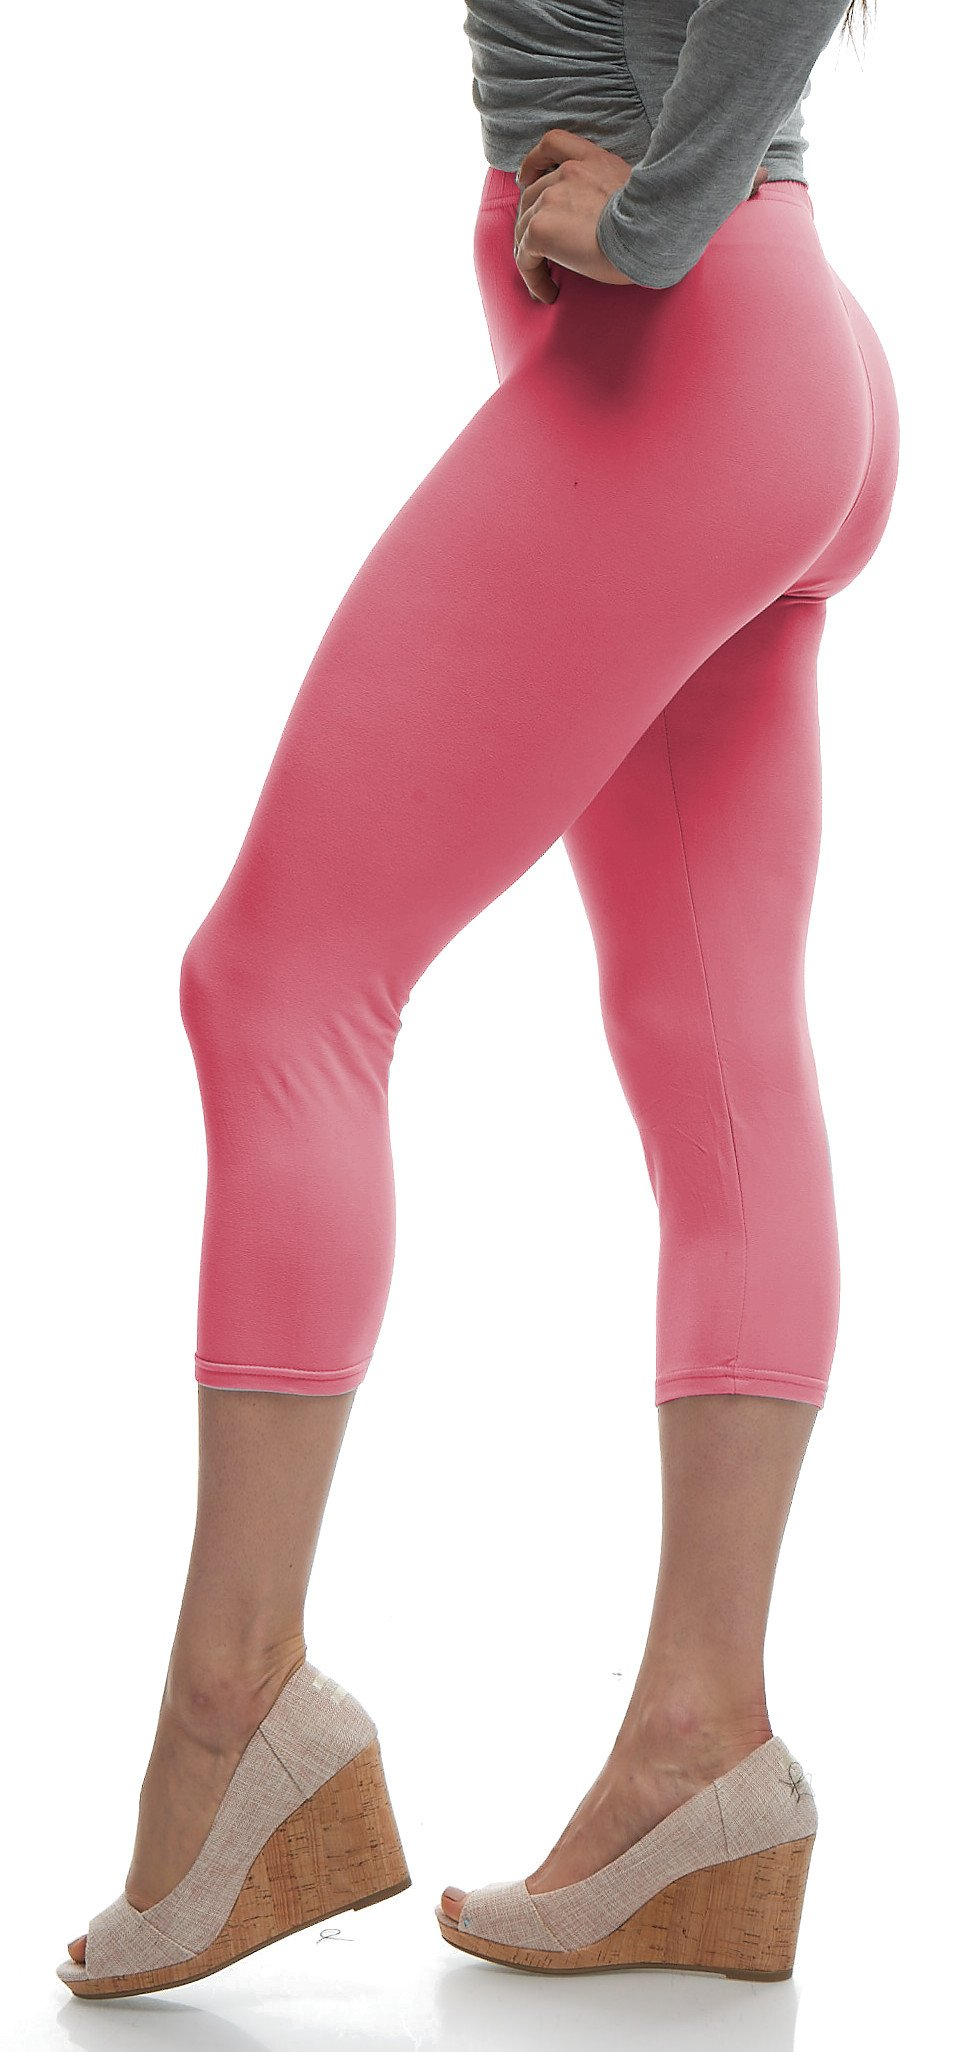 Lush Moda Extra Soft Capri Leggings - Variety of Colors - Mellow Pink, One Size fits Most (XS - XL)